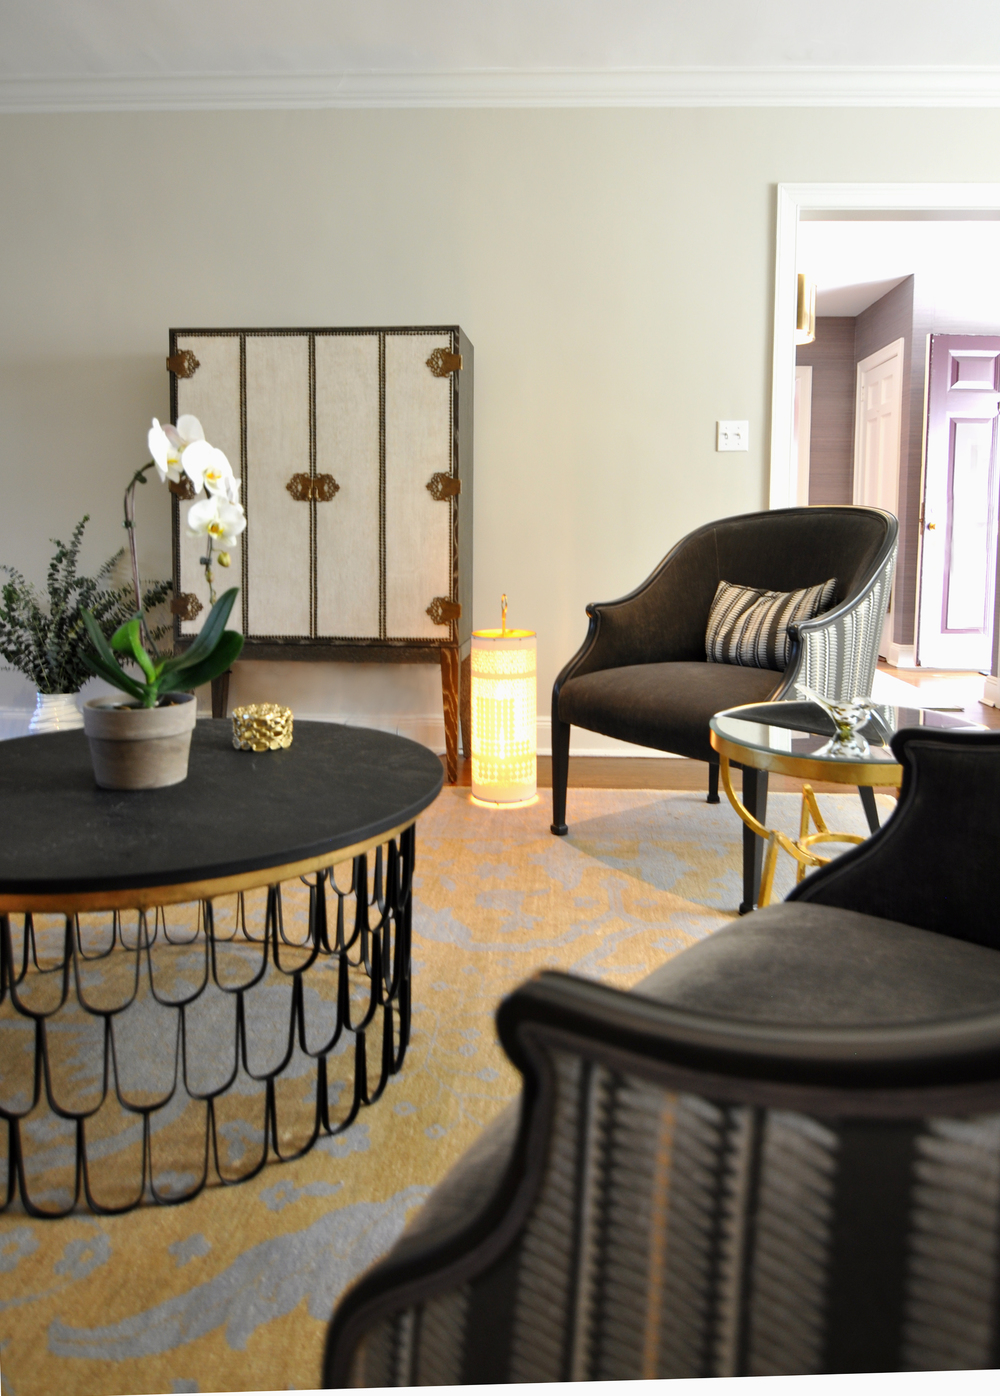 Kim A Mitchell Interior Designer_KAM DESIGN_Timeless Relaxed Luxury_Formal Living Room_Black Cream Gold Plum Color Palette_Arteriors Cocktail Table_Arteriors Cabinet_Fiyel Levent Lantern_Pollck Fabric on Chairs_2016.jpg